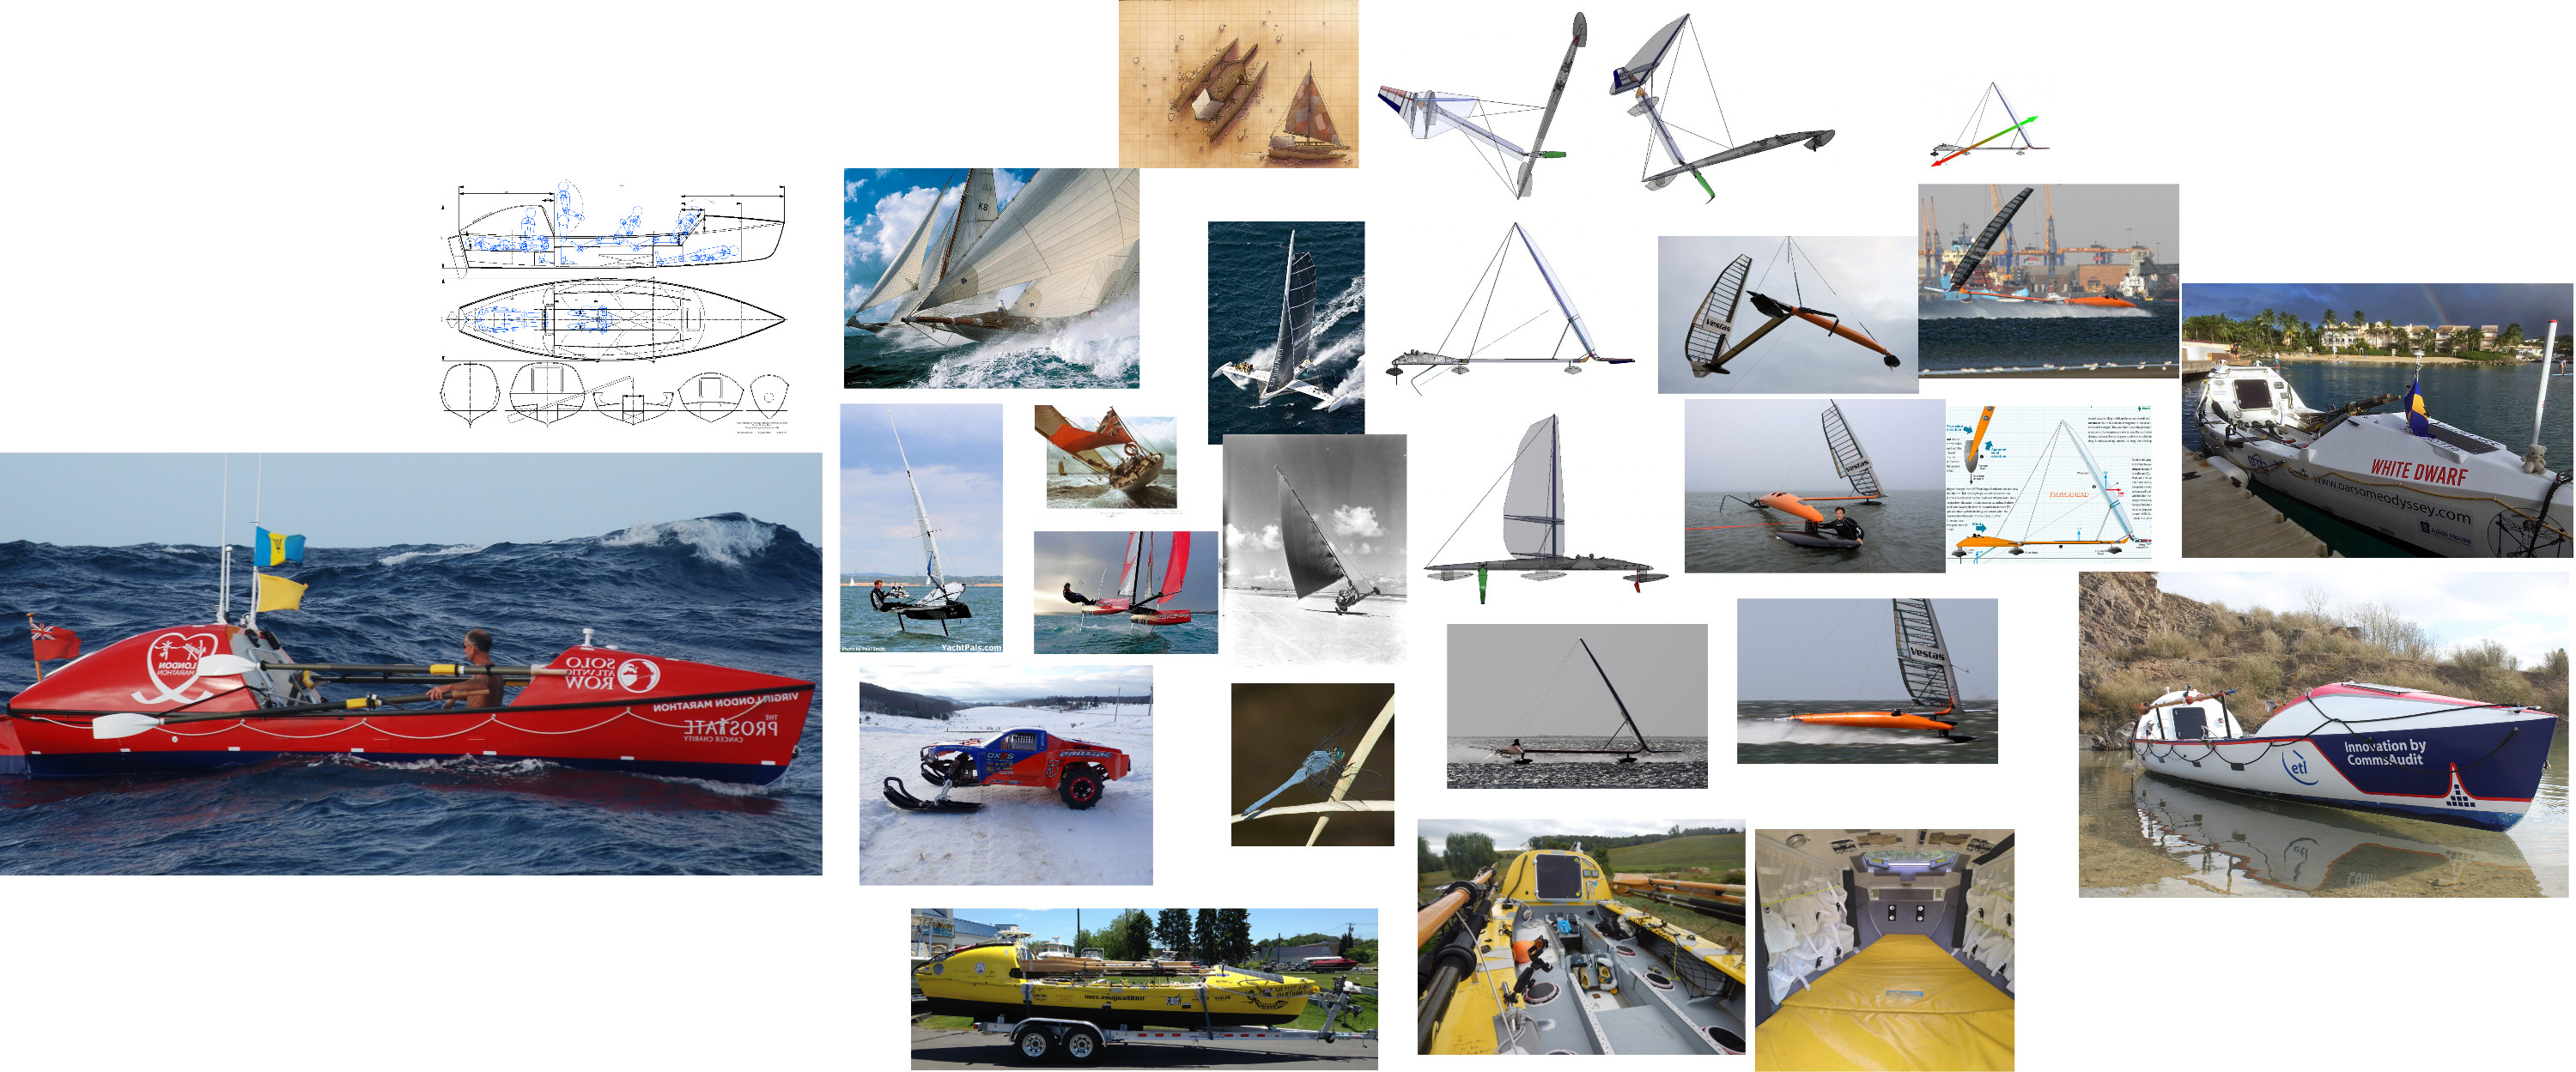 Original inspiration. The Pacific ocean rowboat design gave the main inspiration for the design and shape. The hydrofoil racer gave ideas for the wings.